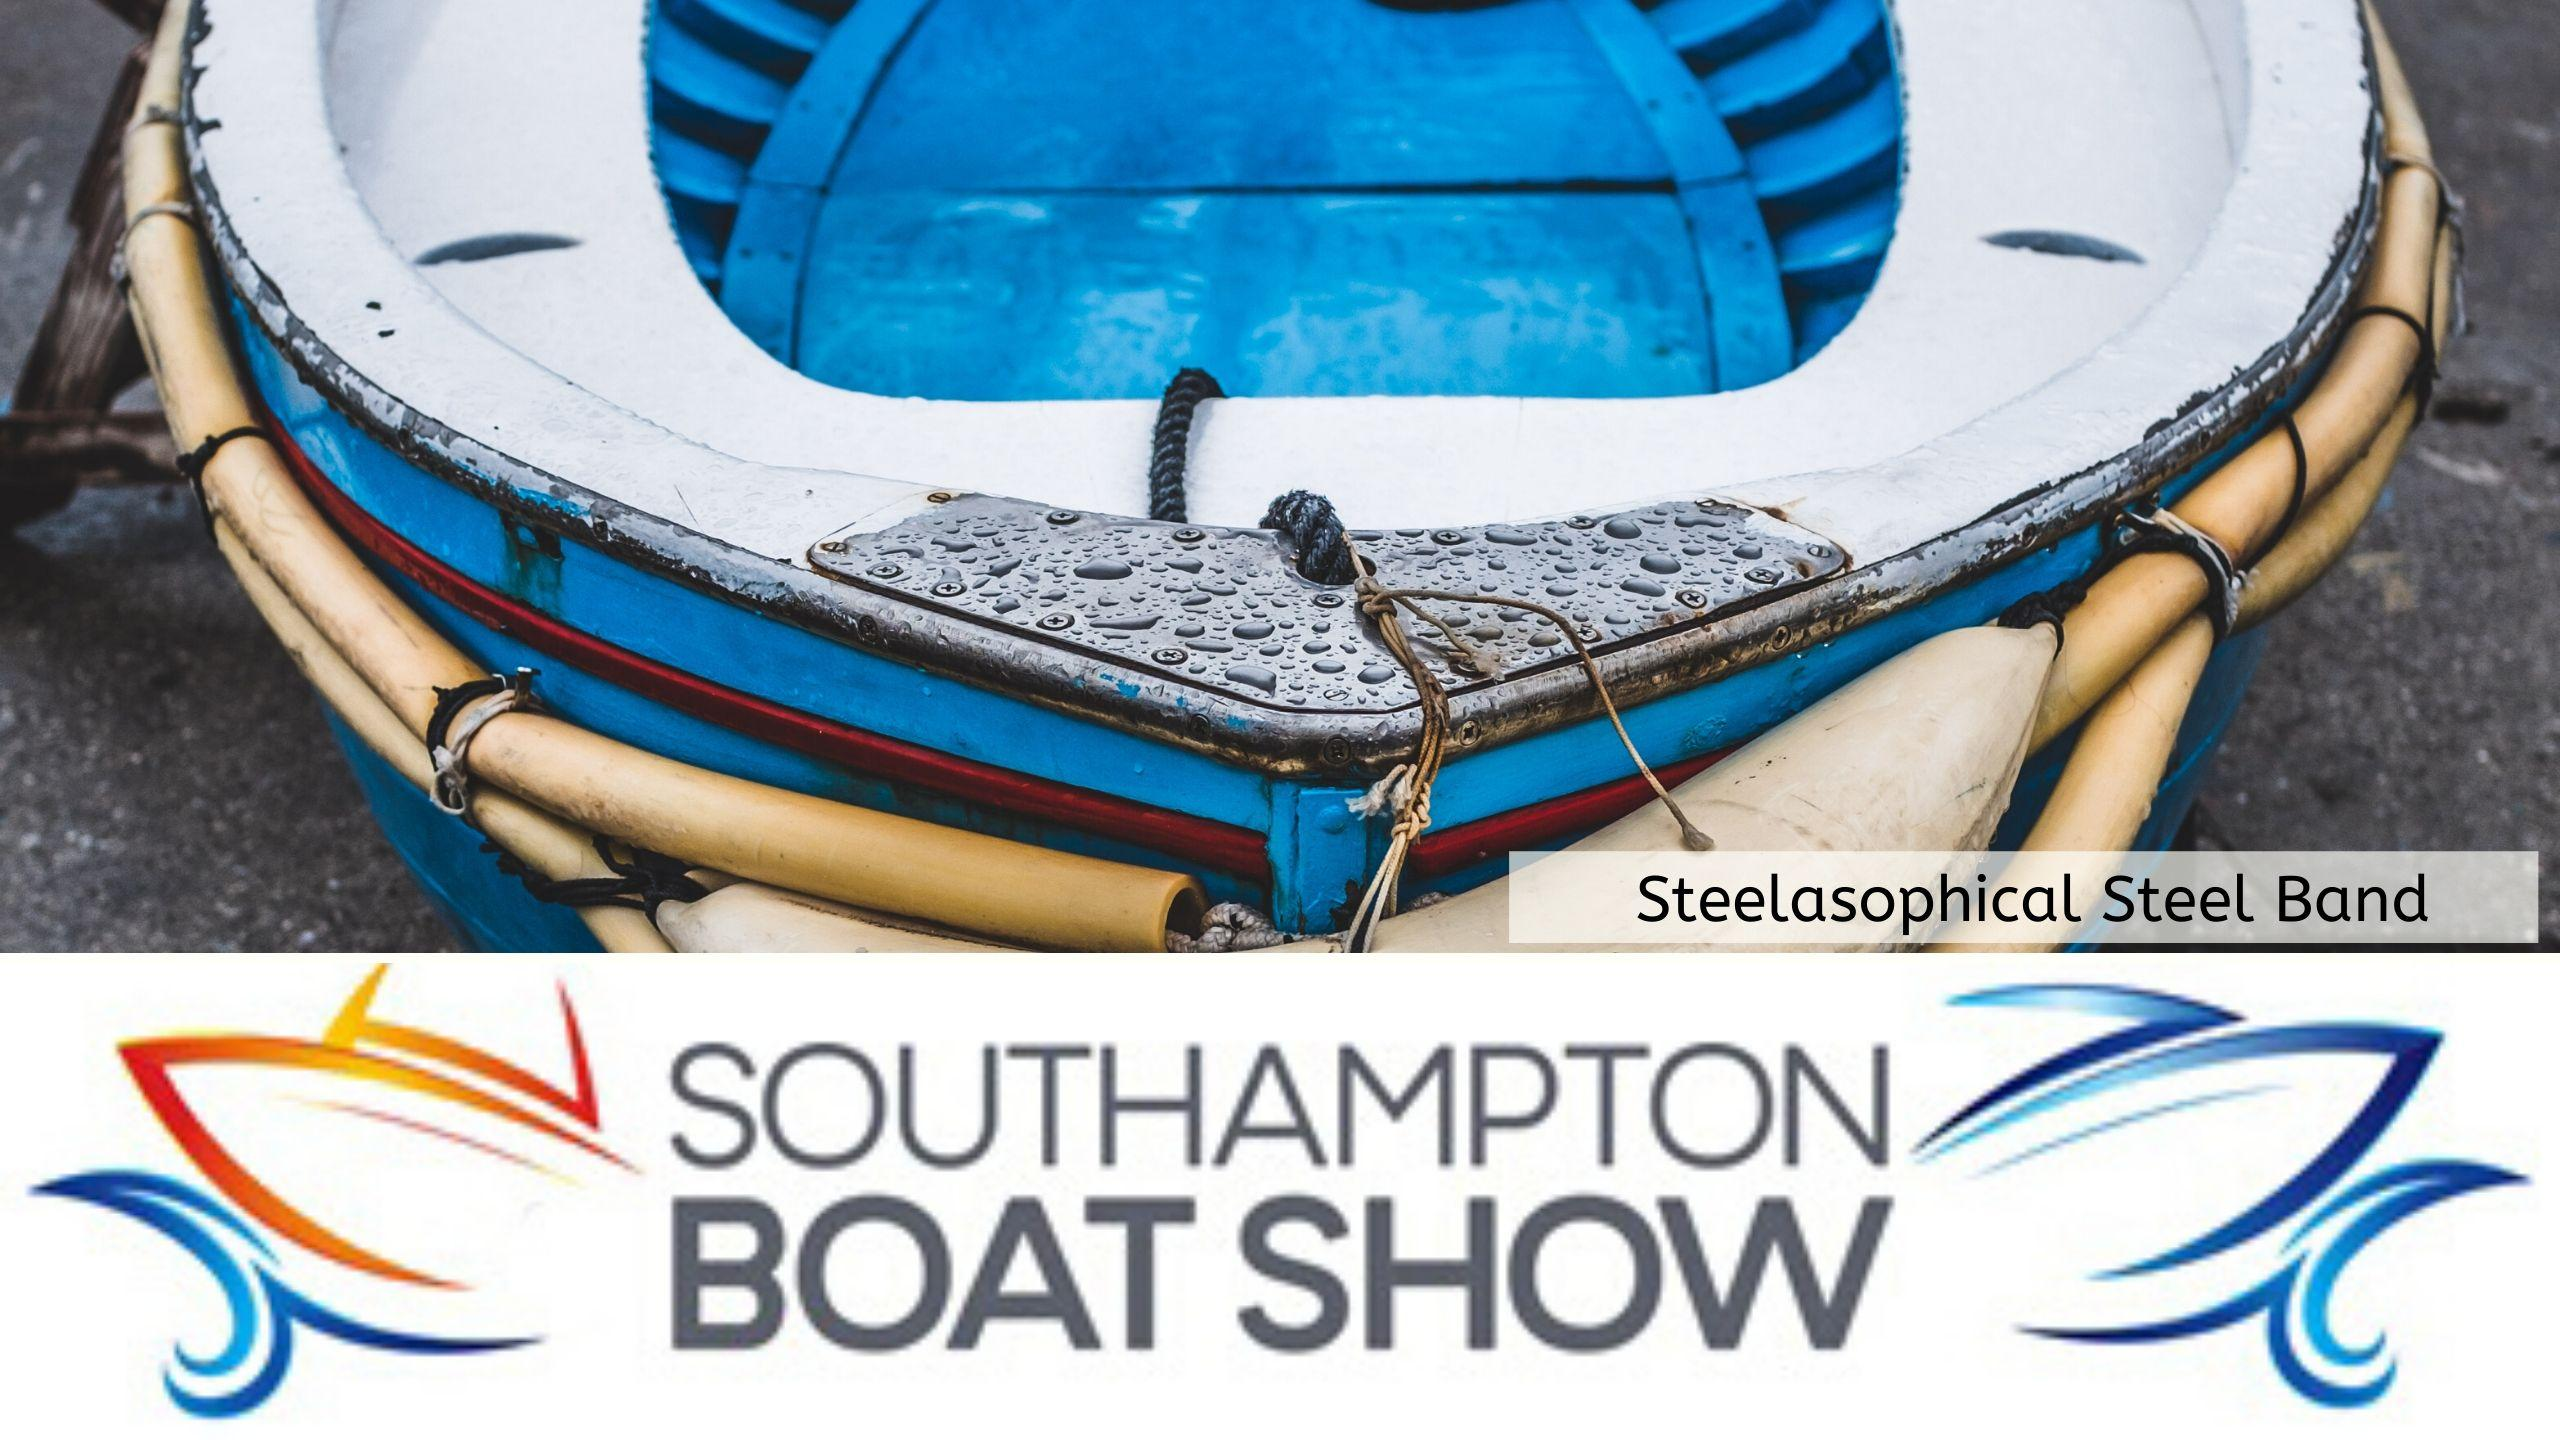 ddf00 Steelasophical Steel Band Soton Southampton Boat Show YachtMarket Yacht Market